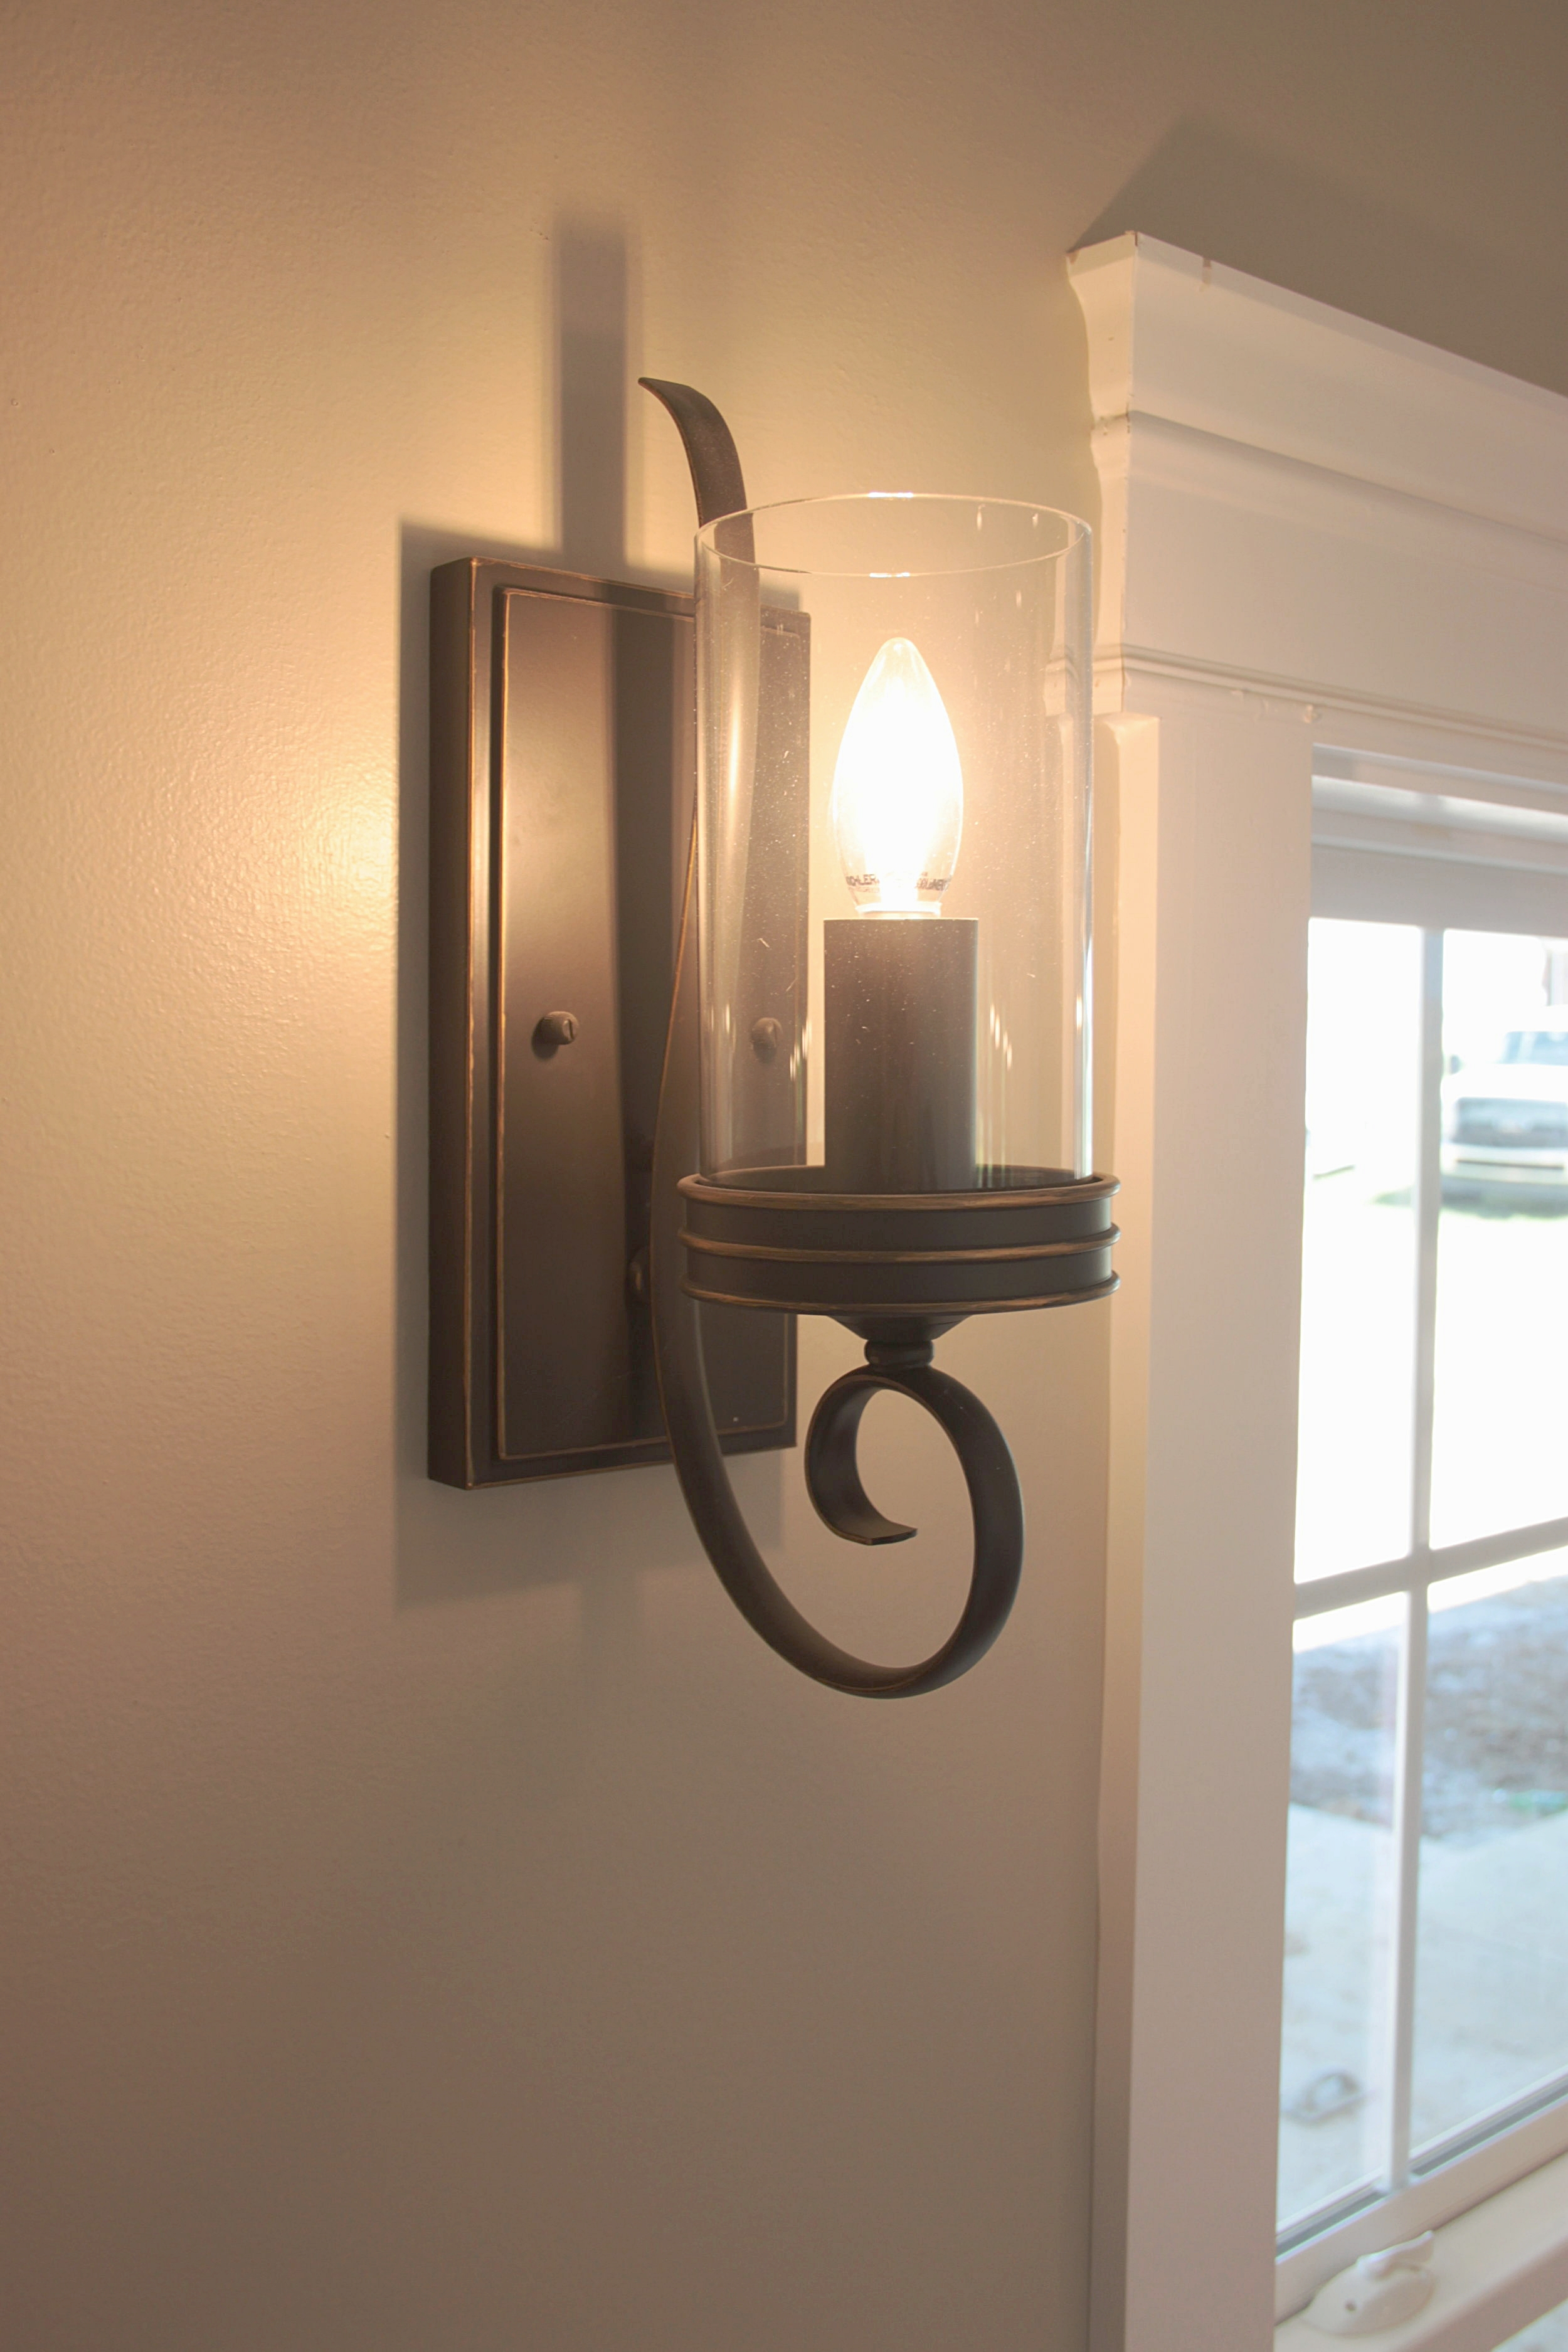 Sconce lighting above the breakfast nook in the kitchen.